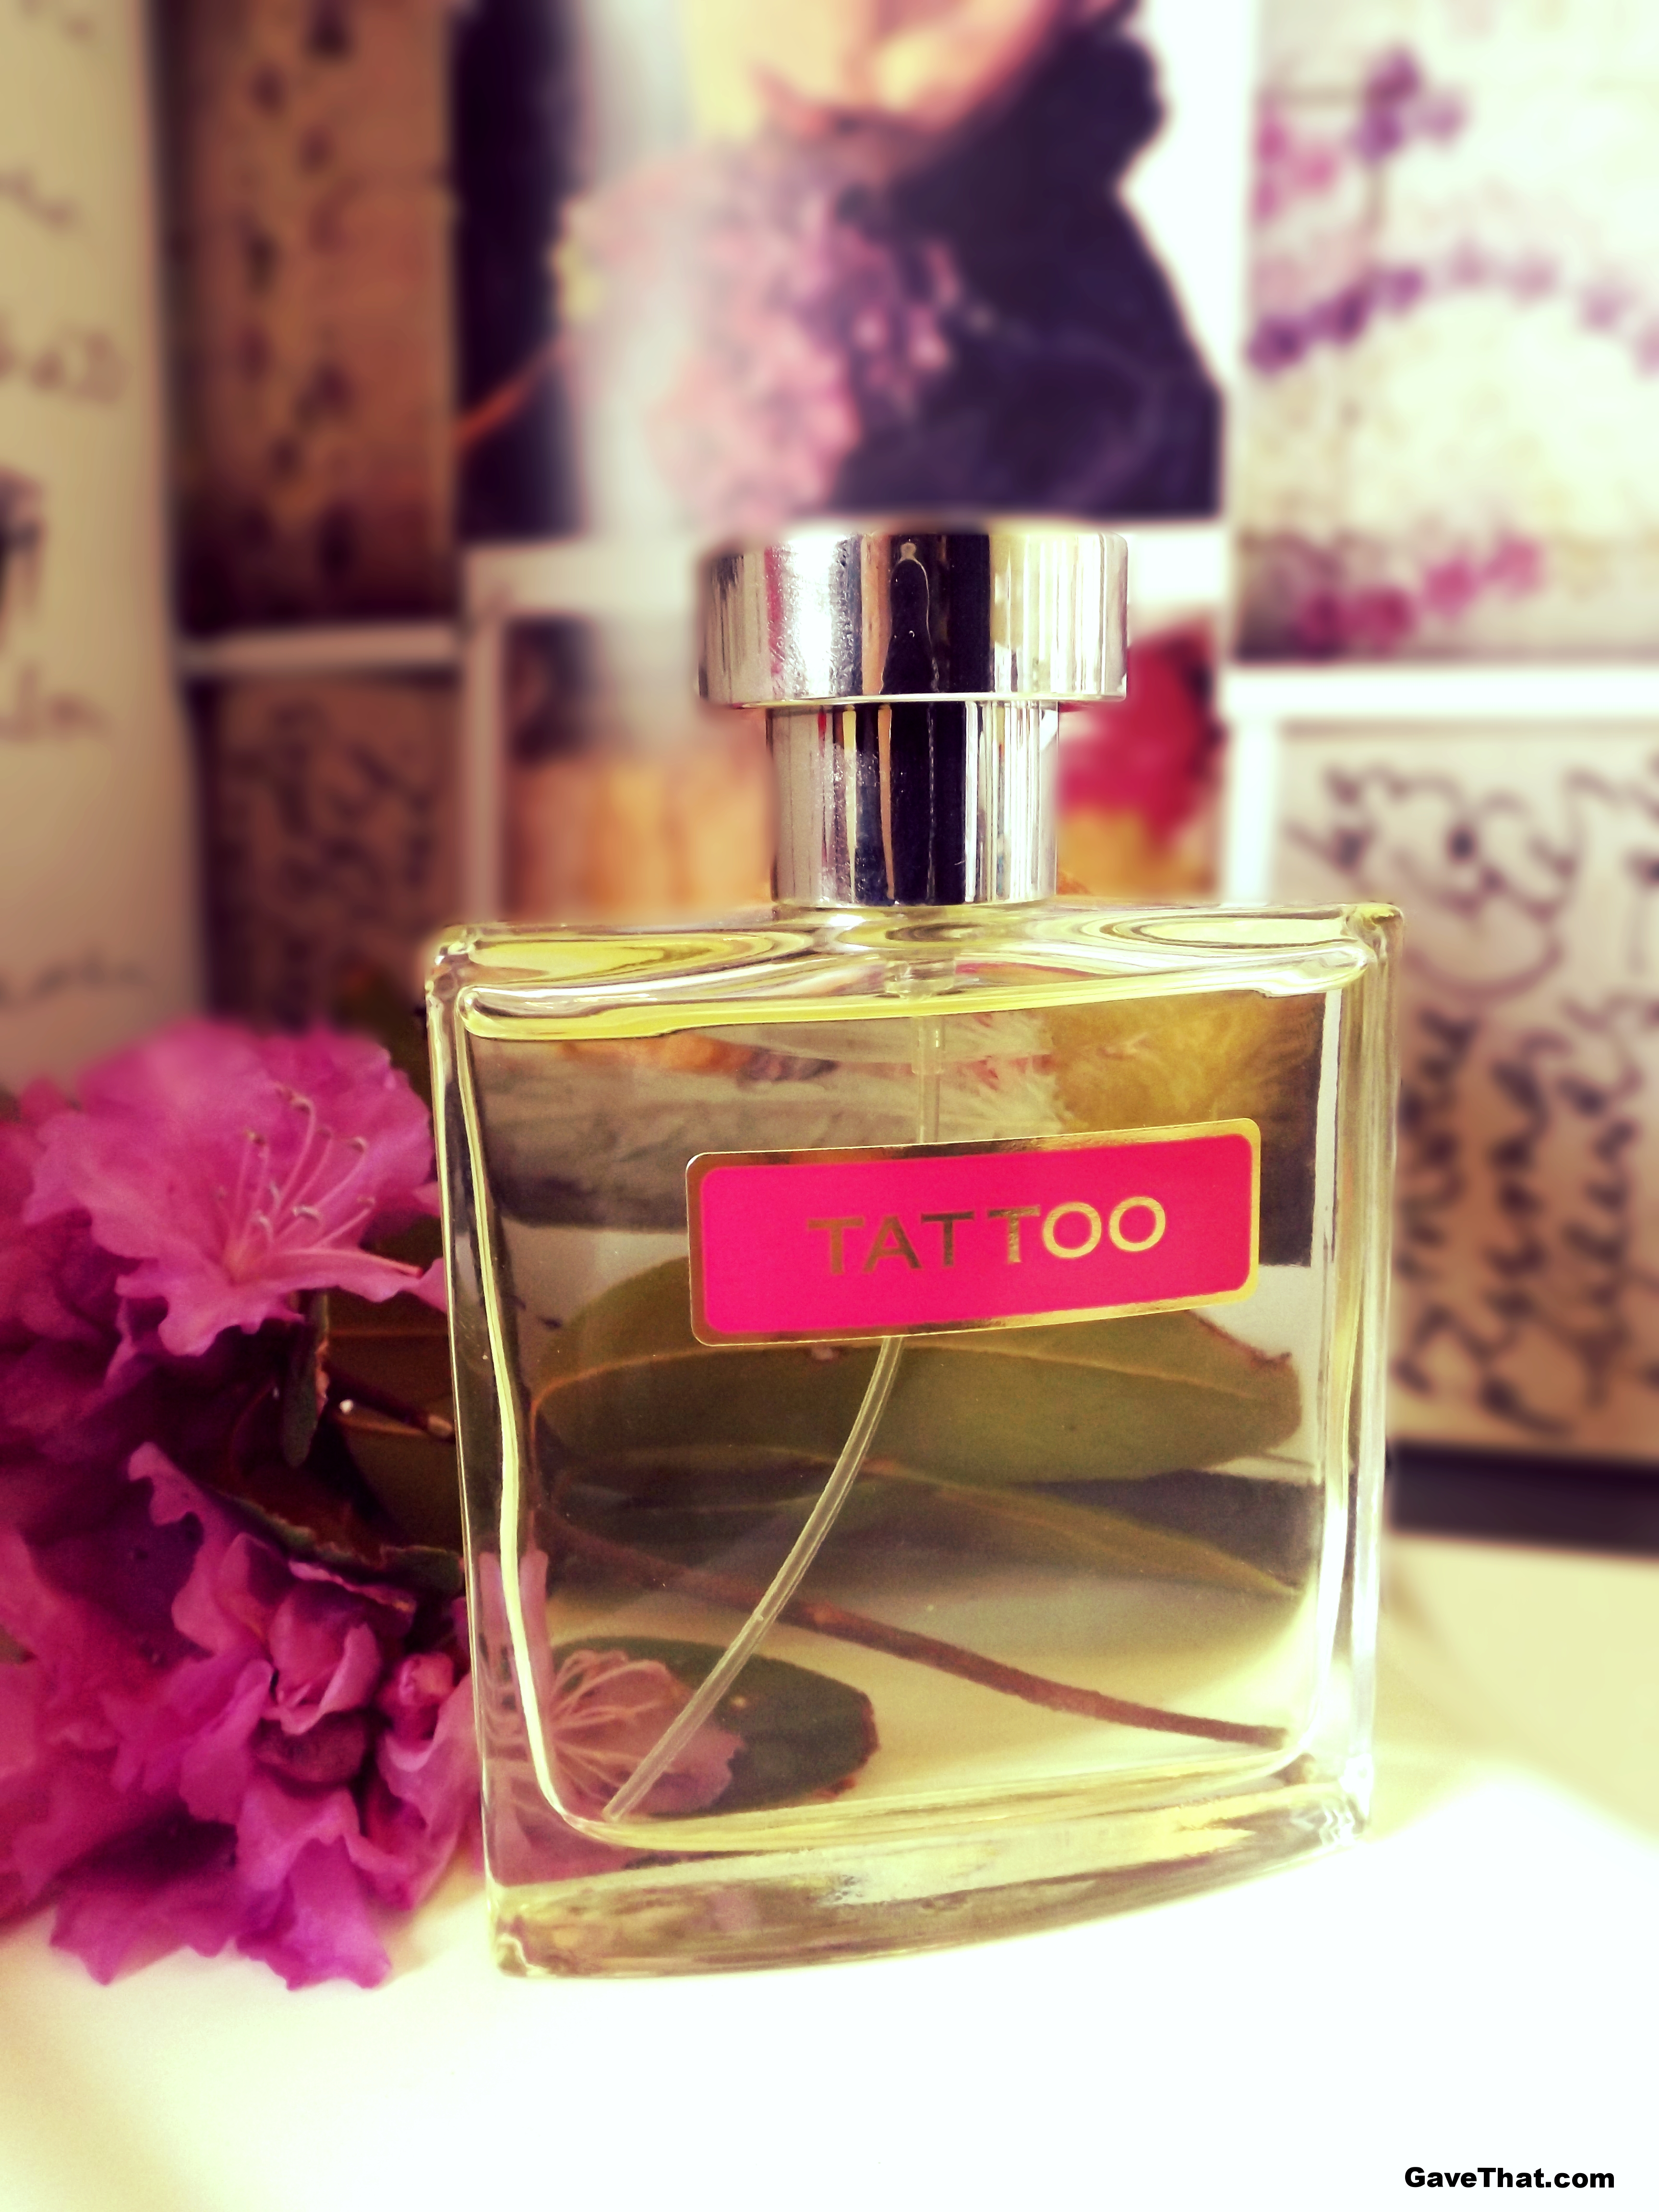 Tattoo Perfume by Michel Germain Spring Scents